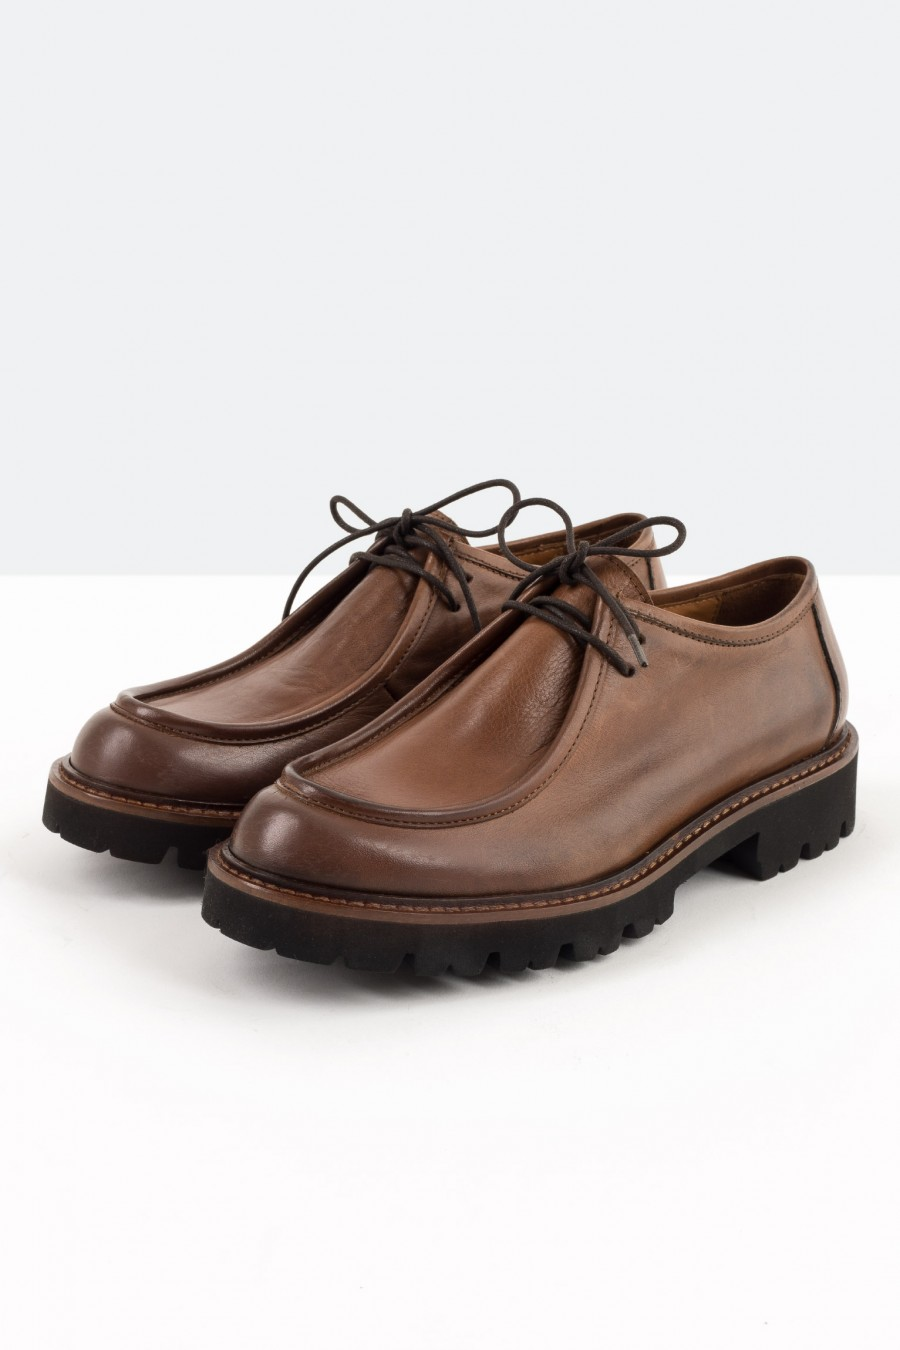 Tobacco brown loafers